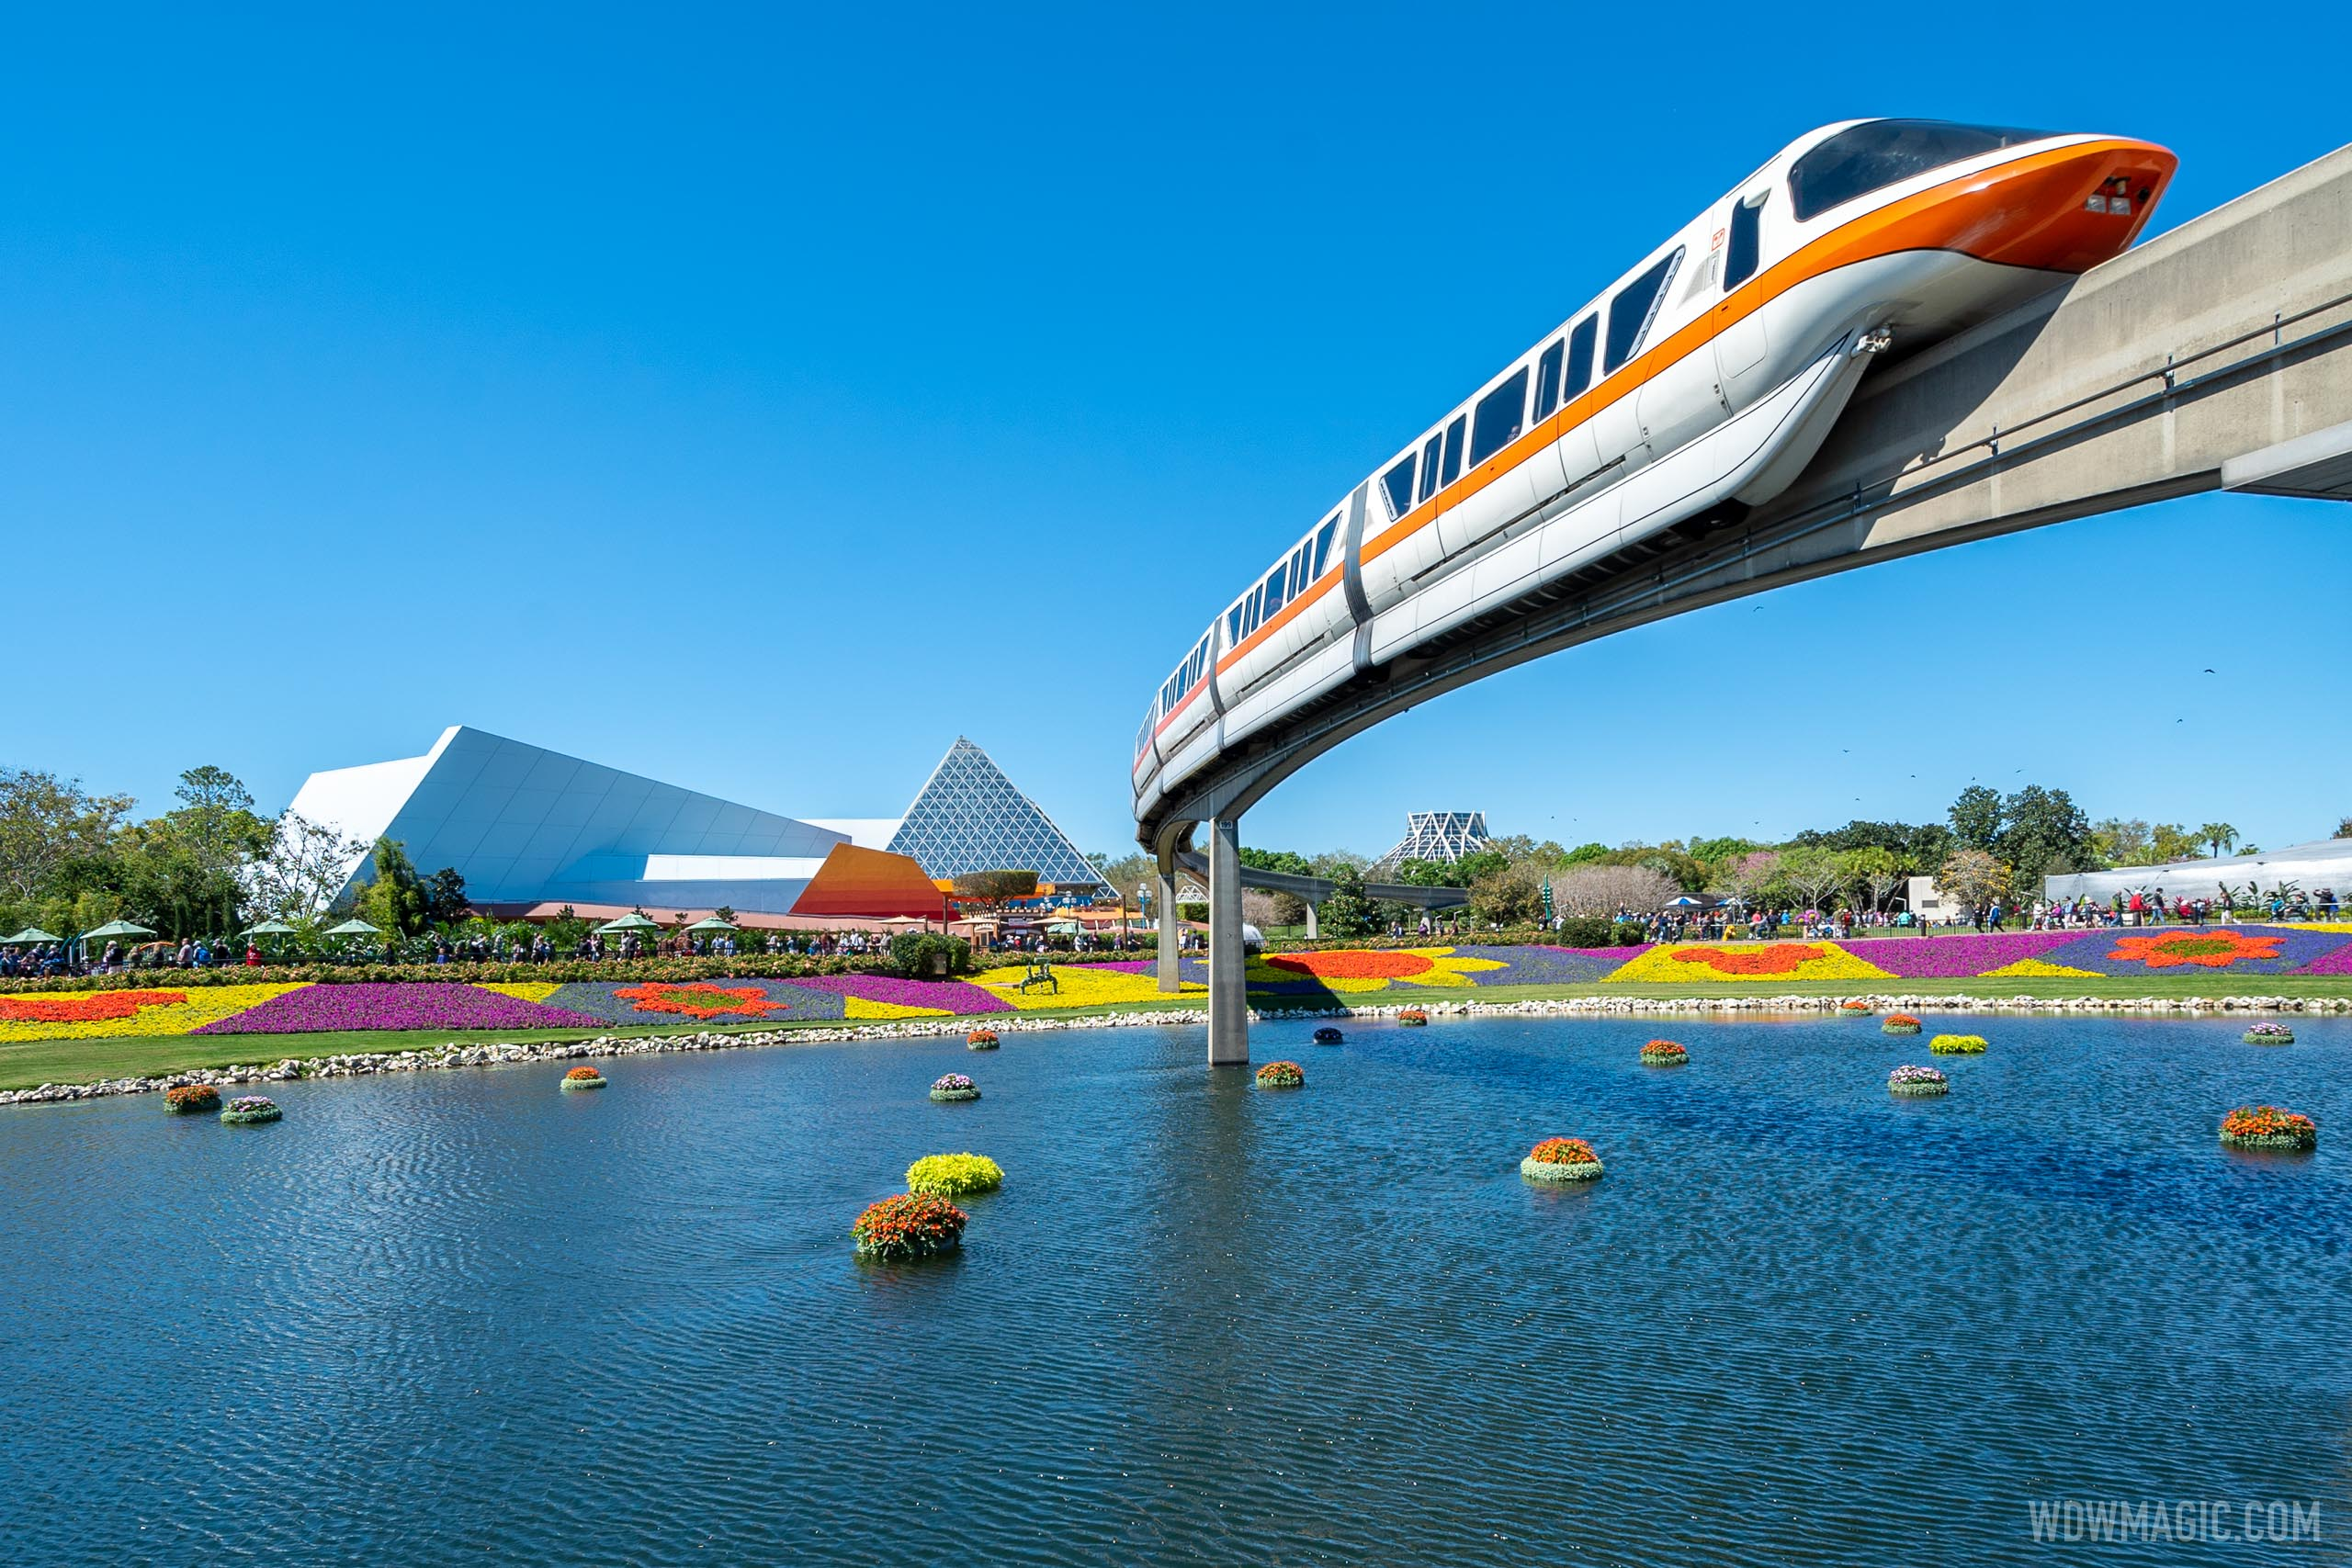 Walt Disney World Monorail System overview